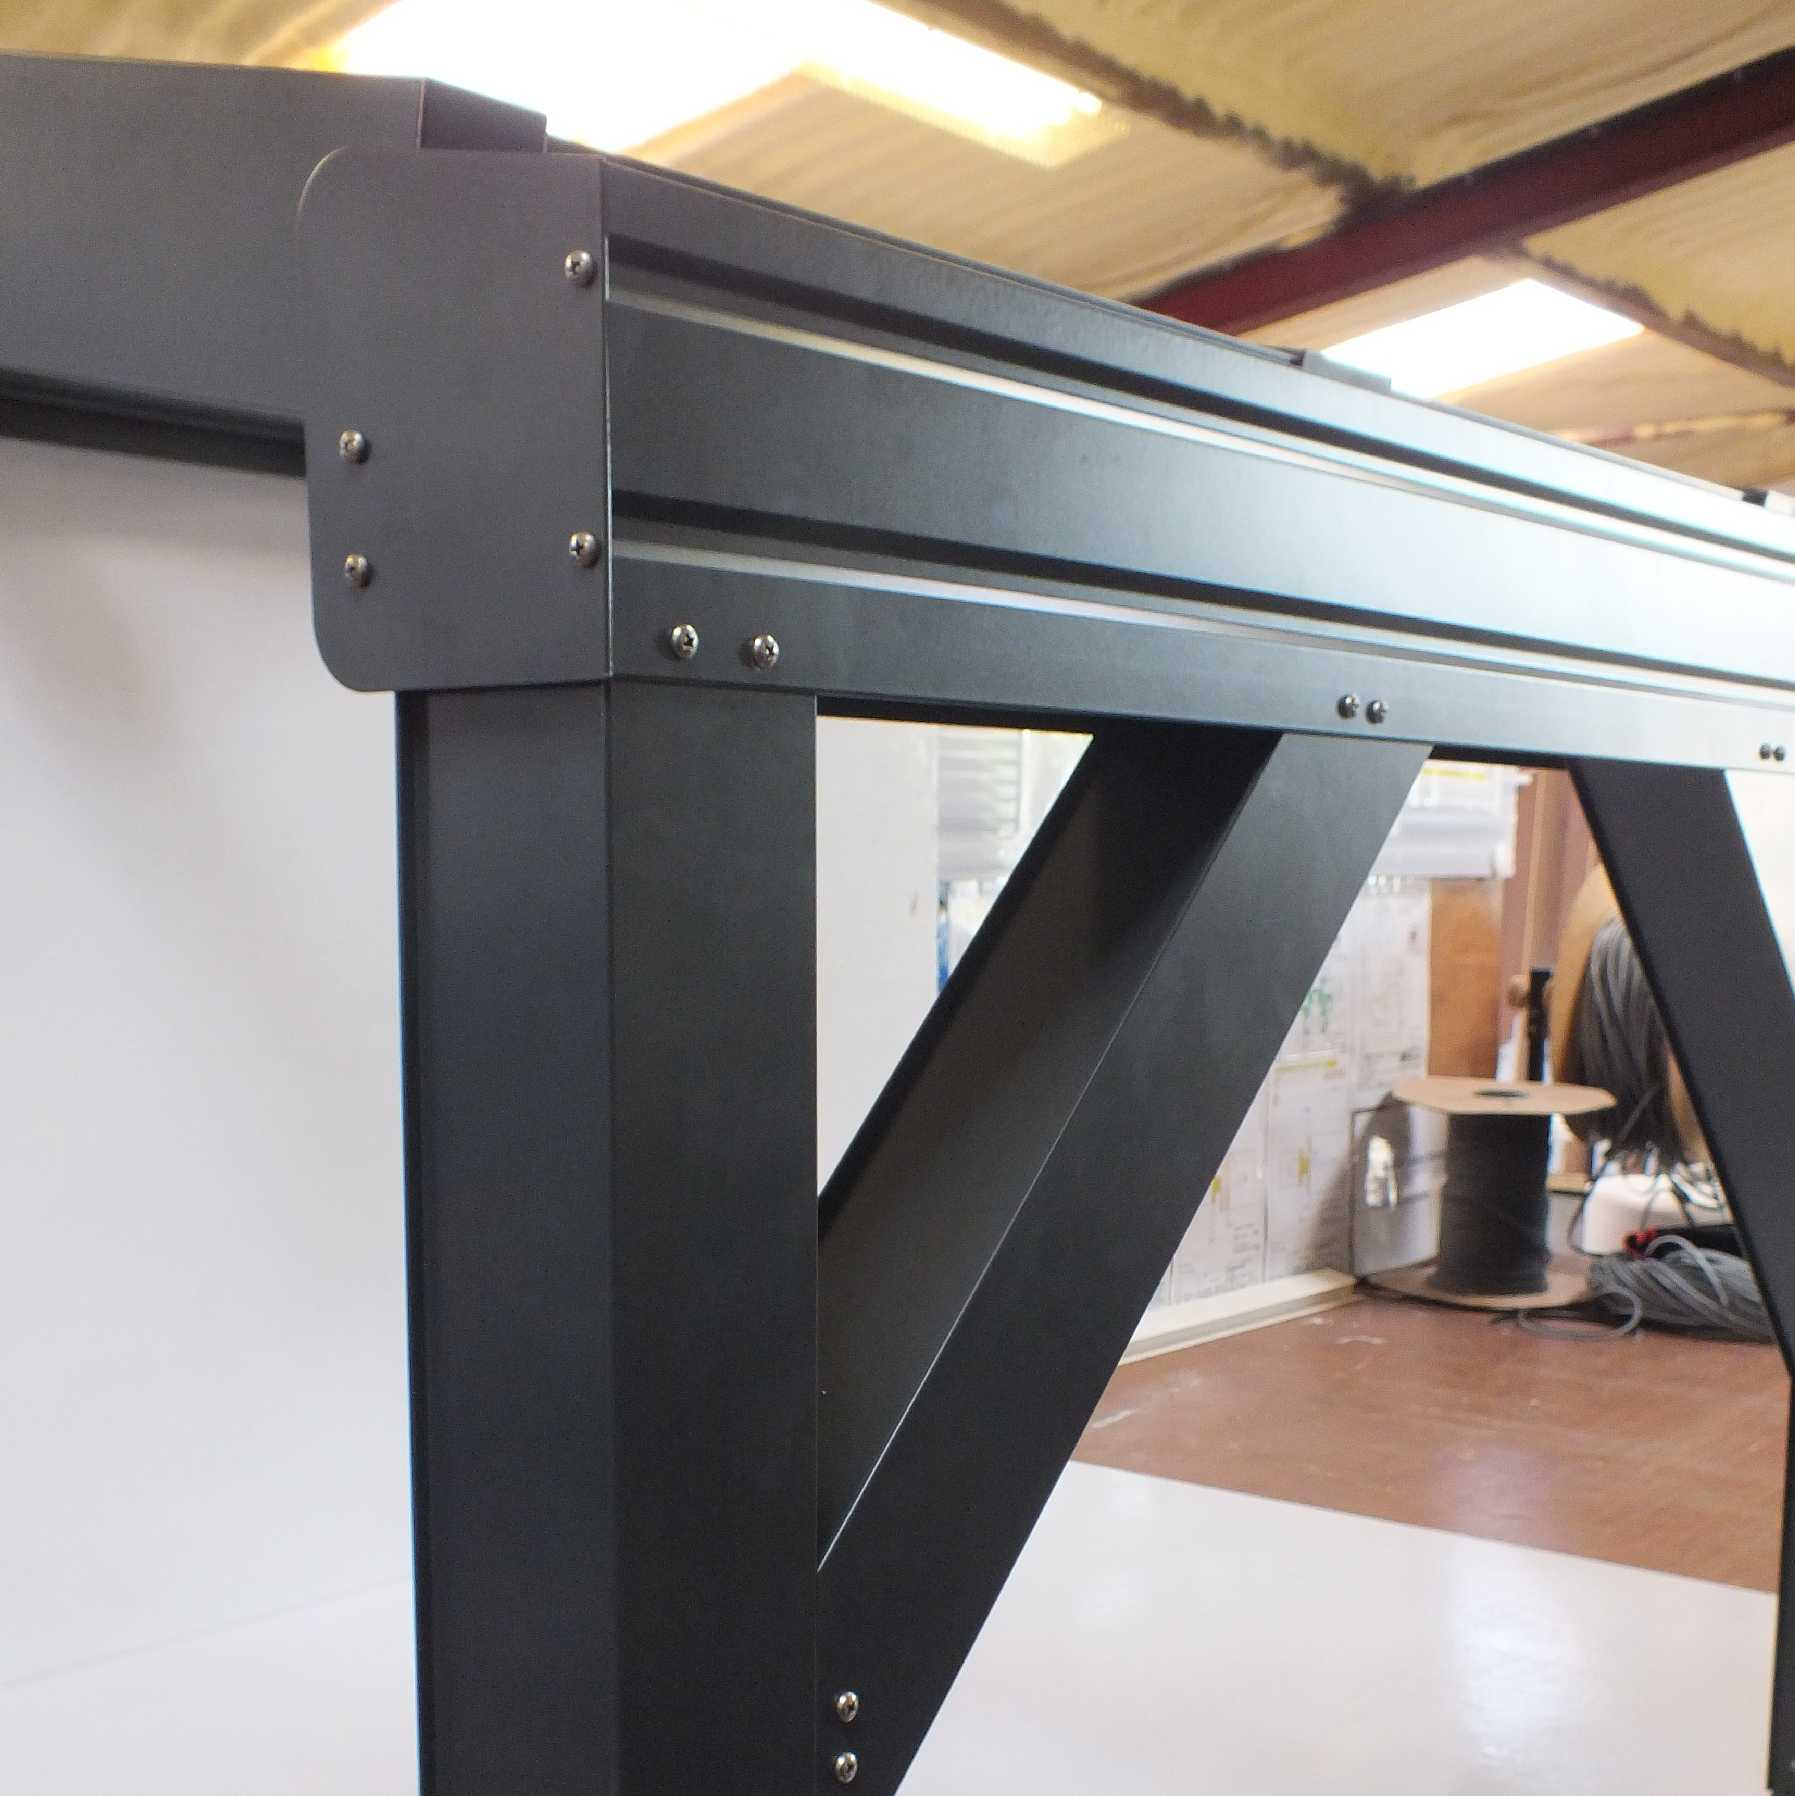 Omega Smart Lean-To Canopy, Anthracite Grey, UNGLAZED for 6mm Glazing - 4.2m (W) x 2.5m (P), (3) Supporting Posts from Omega Build